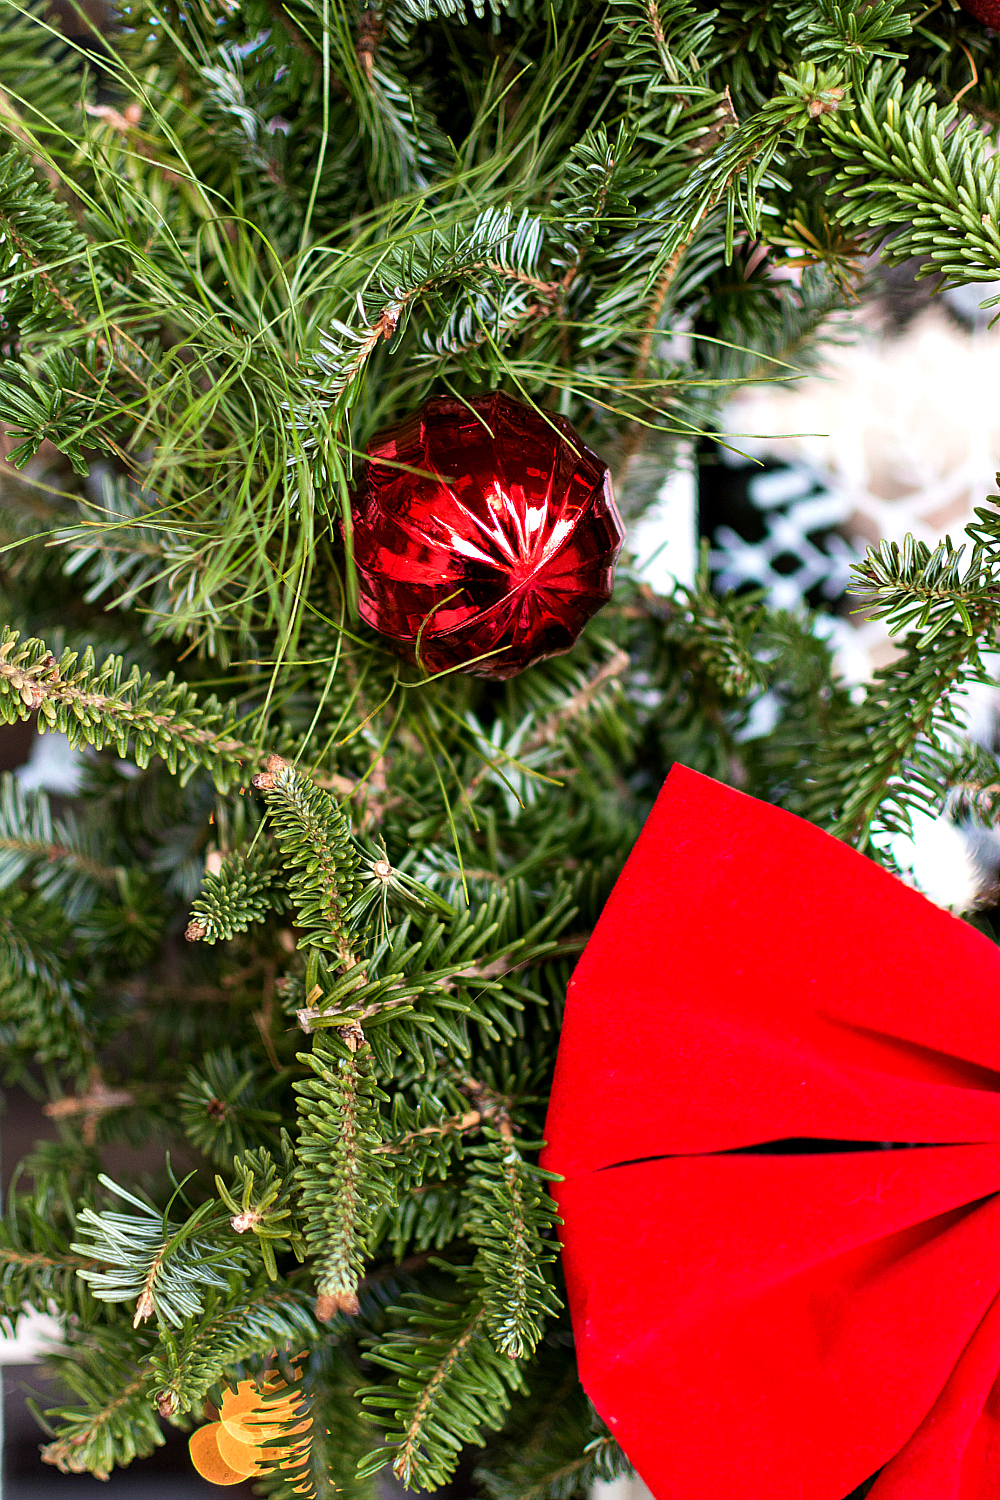 Outdoor-Christmas-Decor (11 of 31)